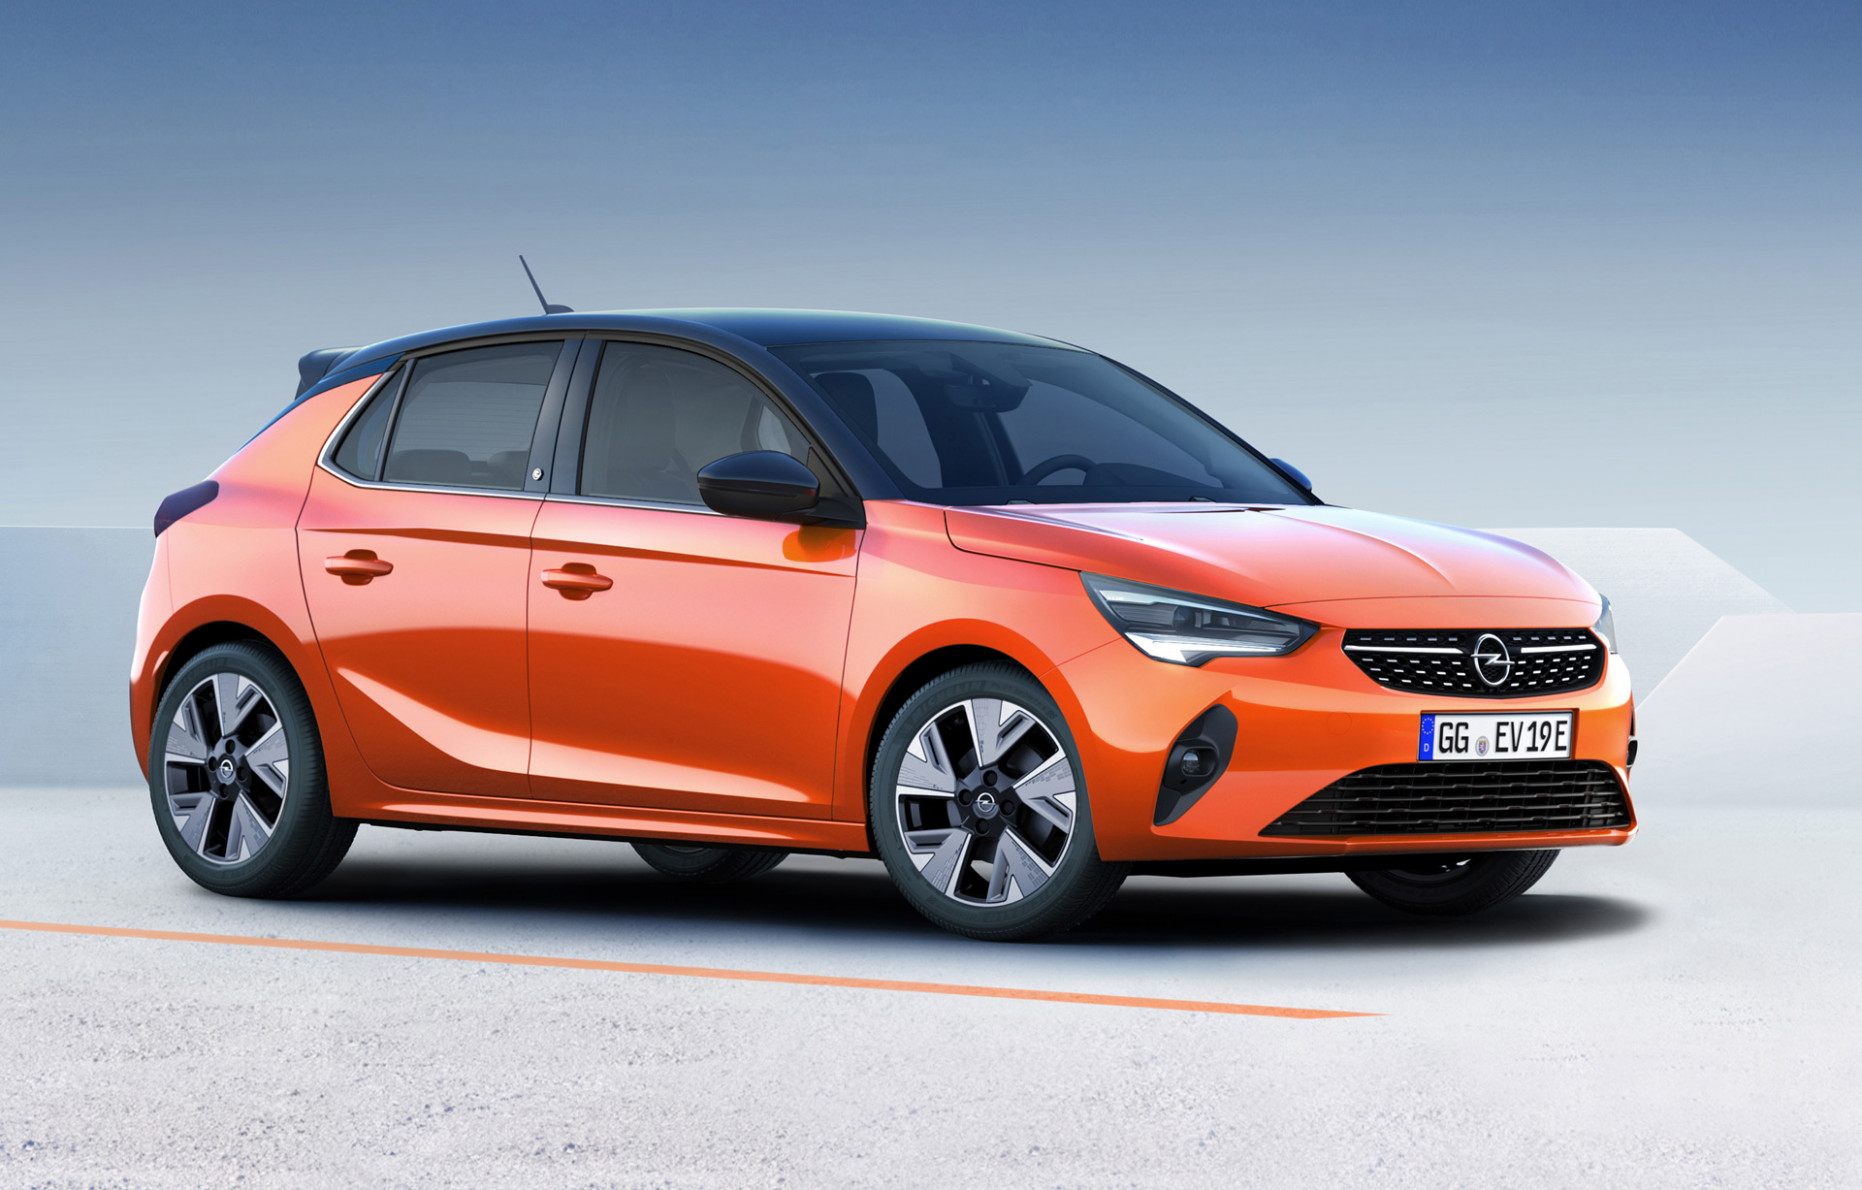 Corsa-e electric hatchback is part of Opel's first move ...